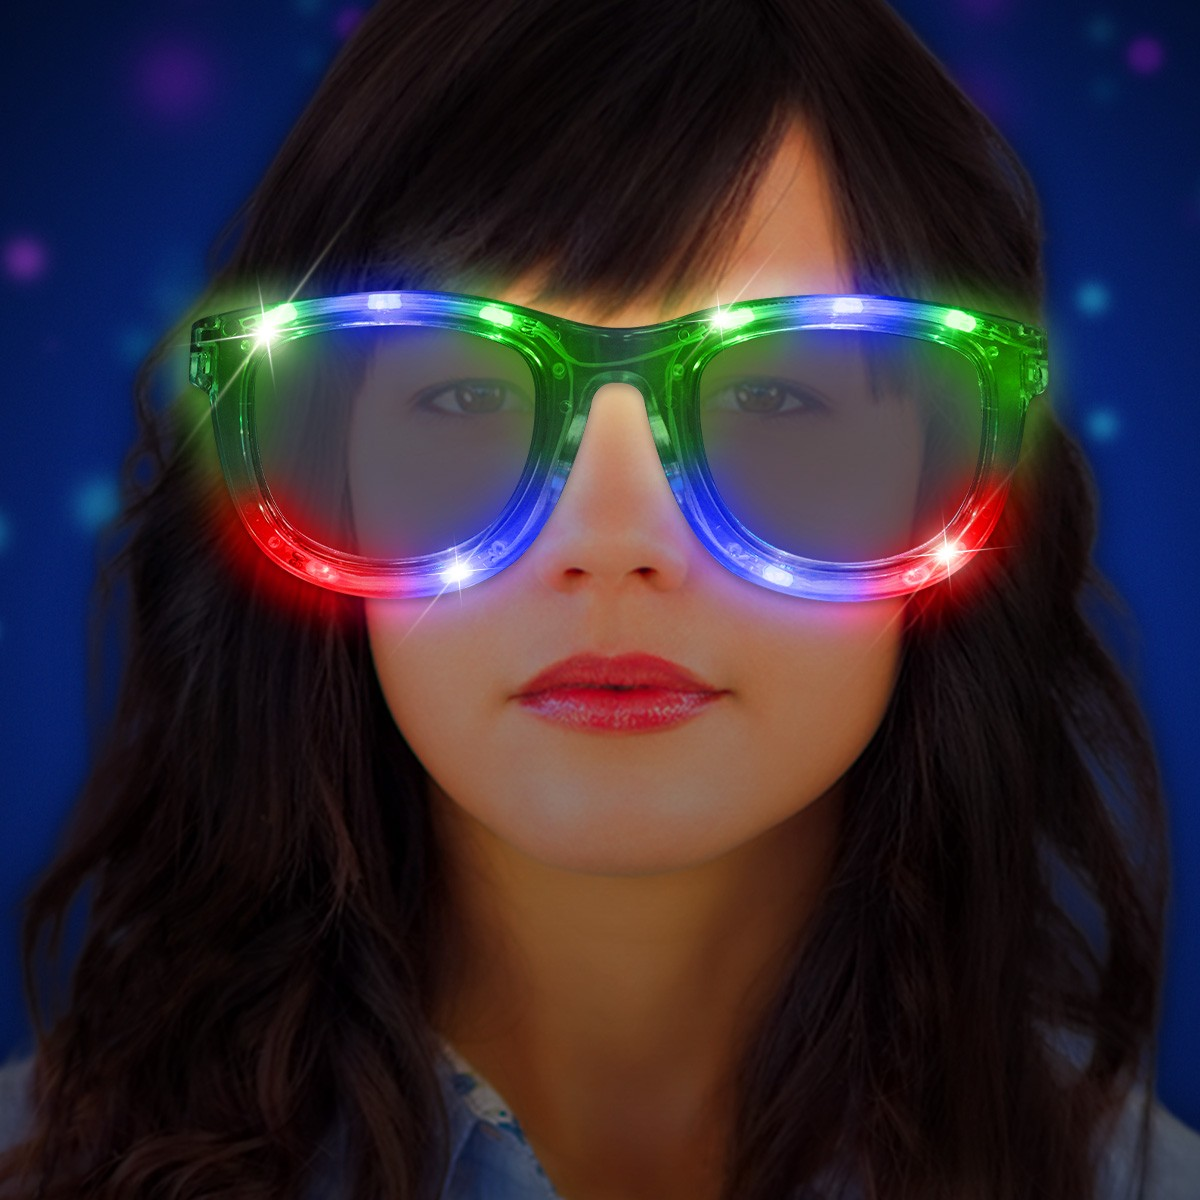 JUMBO CLEAR-LED SUNGLASSES-LED